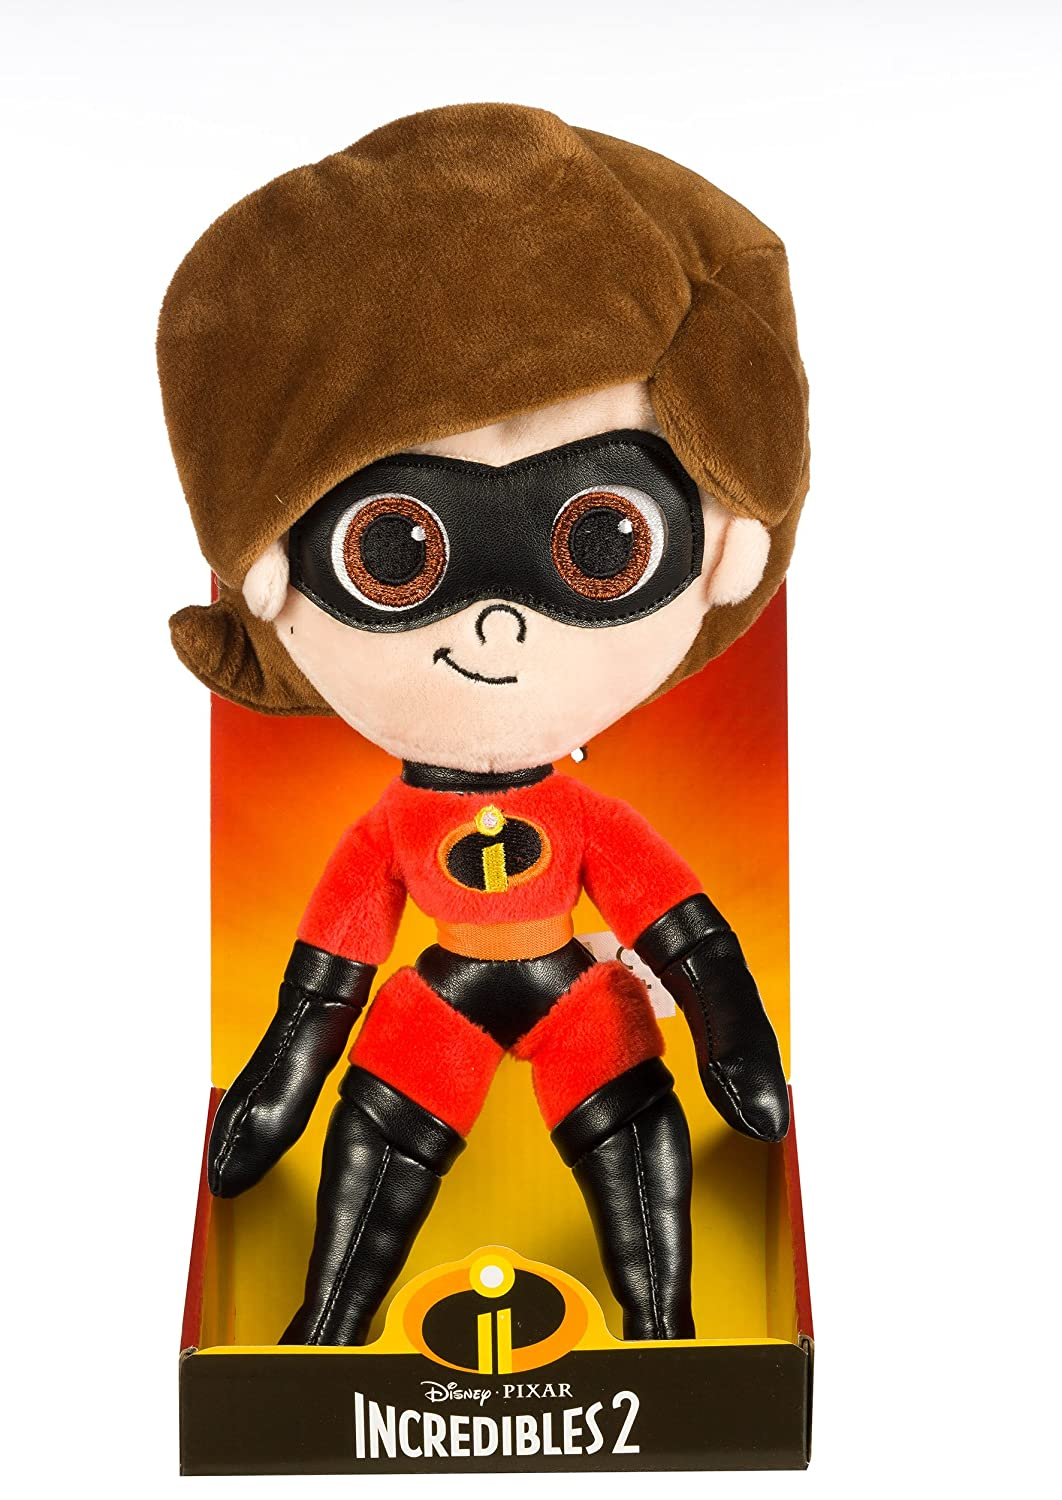 Posh Paws 37094 2 Dash 2 Incredibles 2 Juguete Suave, Multi, Talla Única: Amazon.es: Juguetes y juegos